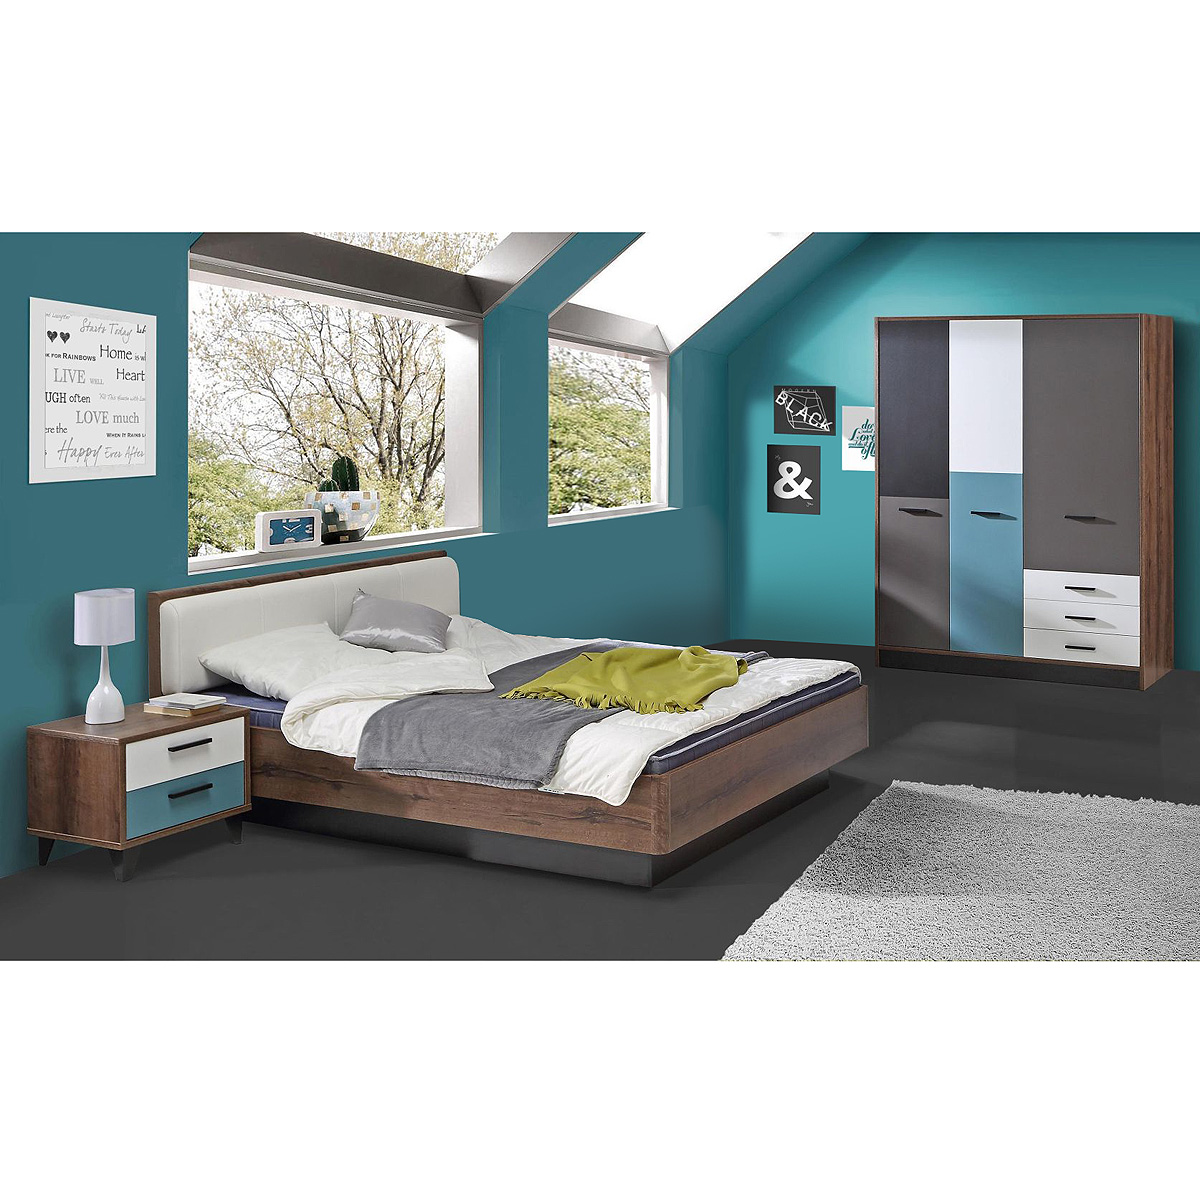 jugendzimmer 2 raven kinderzimmer in schlammeiche wei. Black Bedroom Furniture Sets. Home Design Ideas